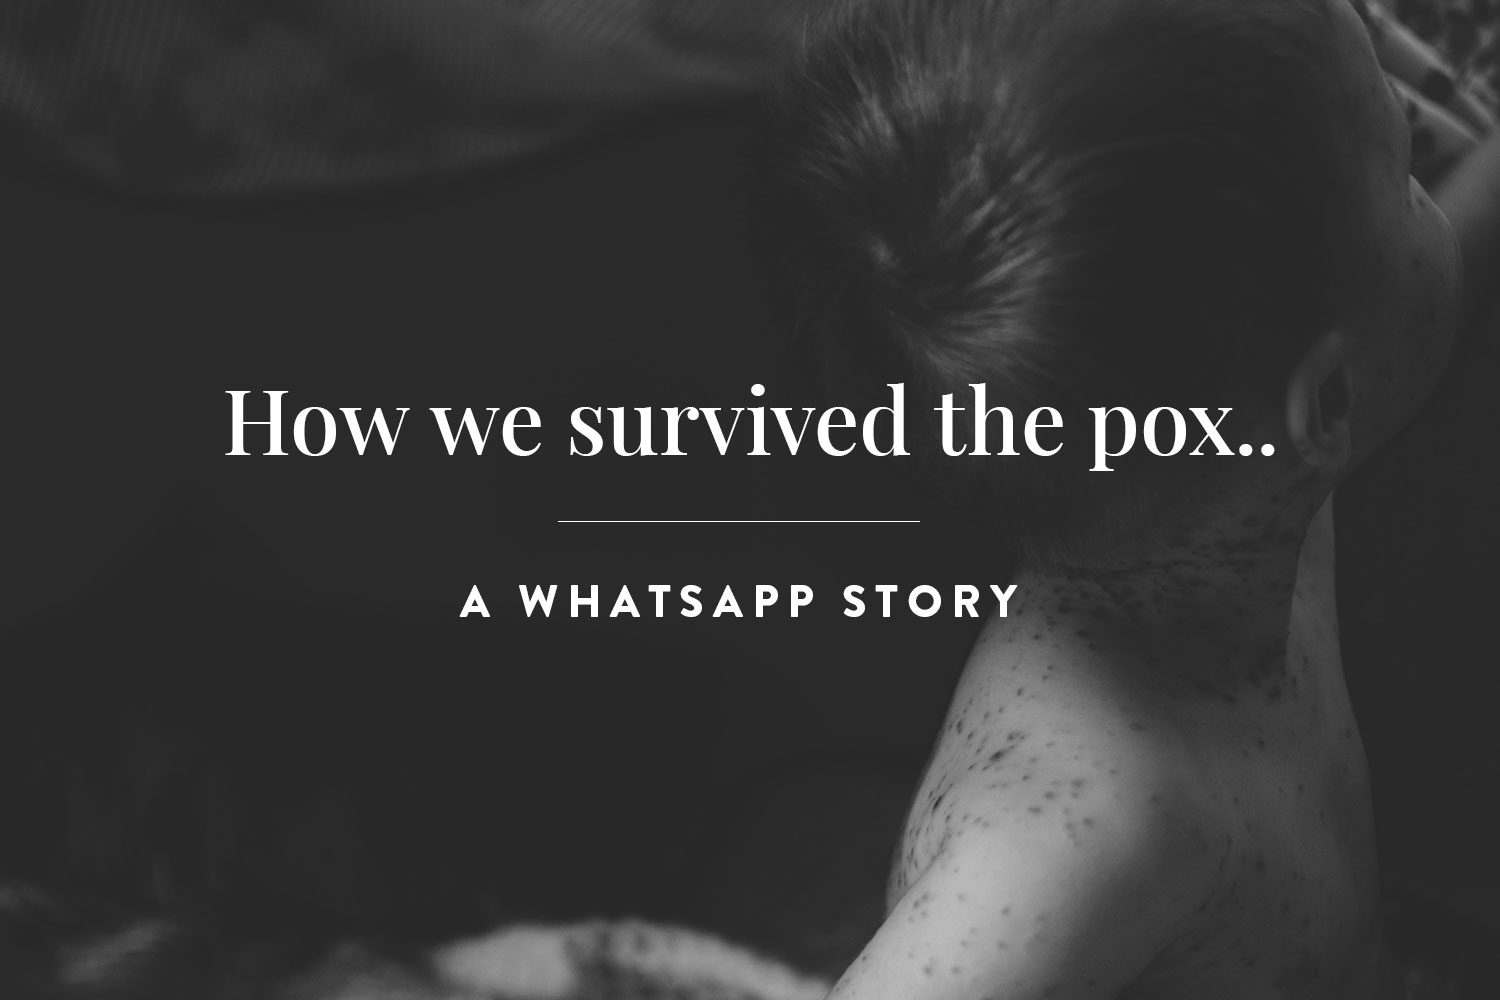 How We Survived The Pox—A WhatsApp Story